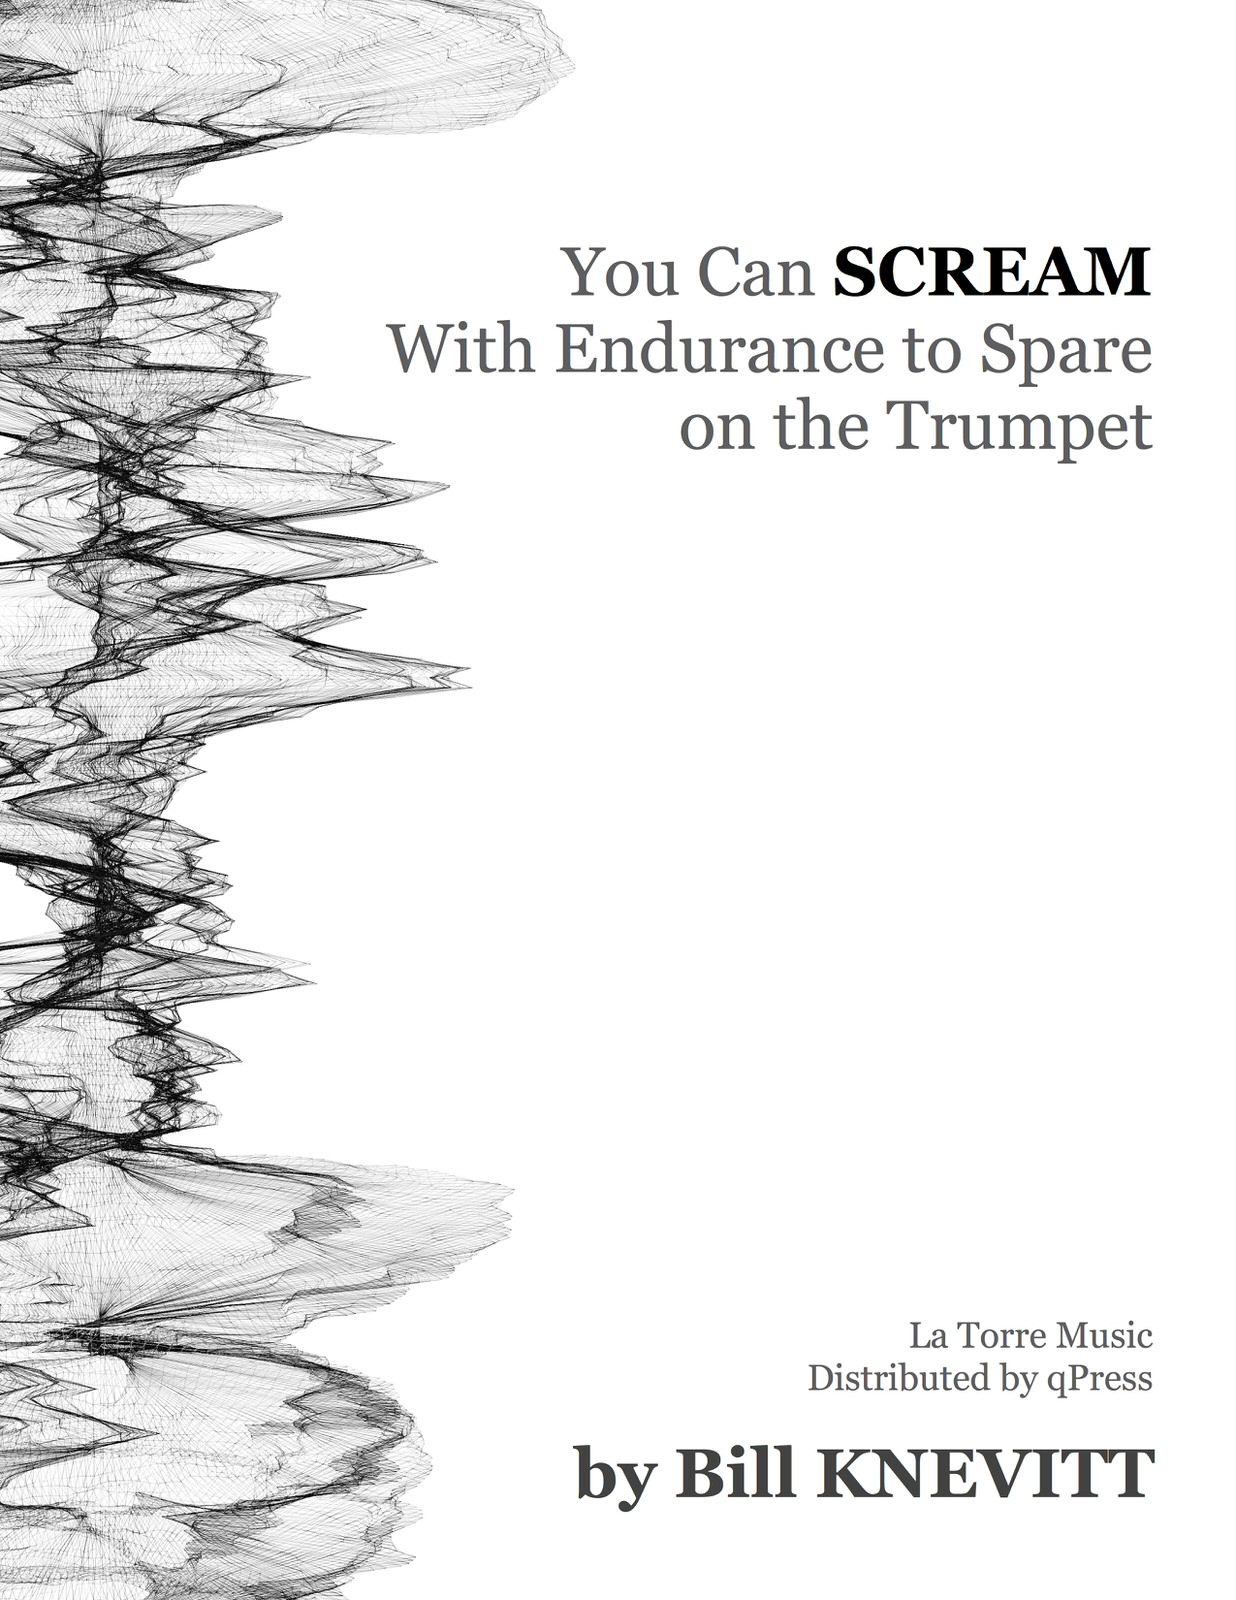 Knevitt, You Can Scream With Endurance To Spare On Trumpet-p001